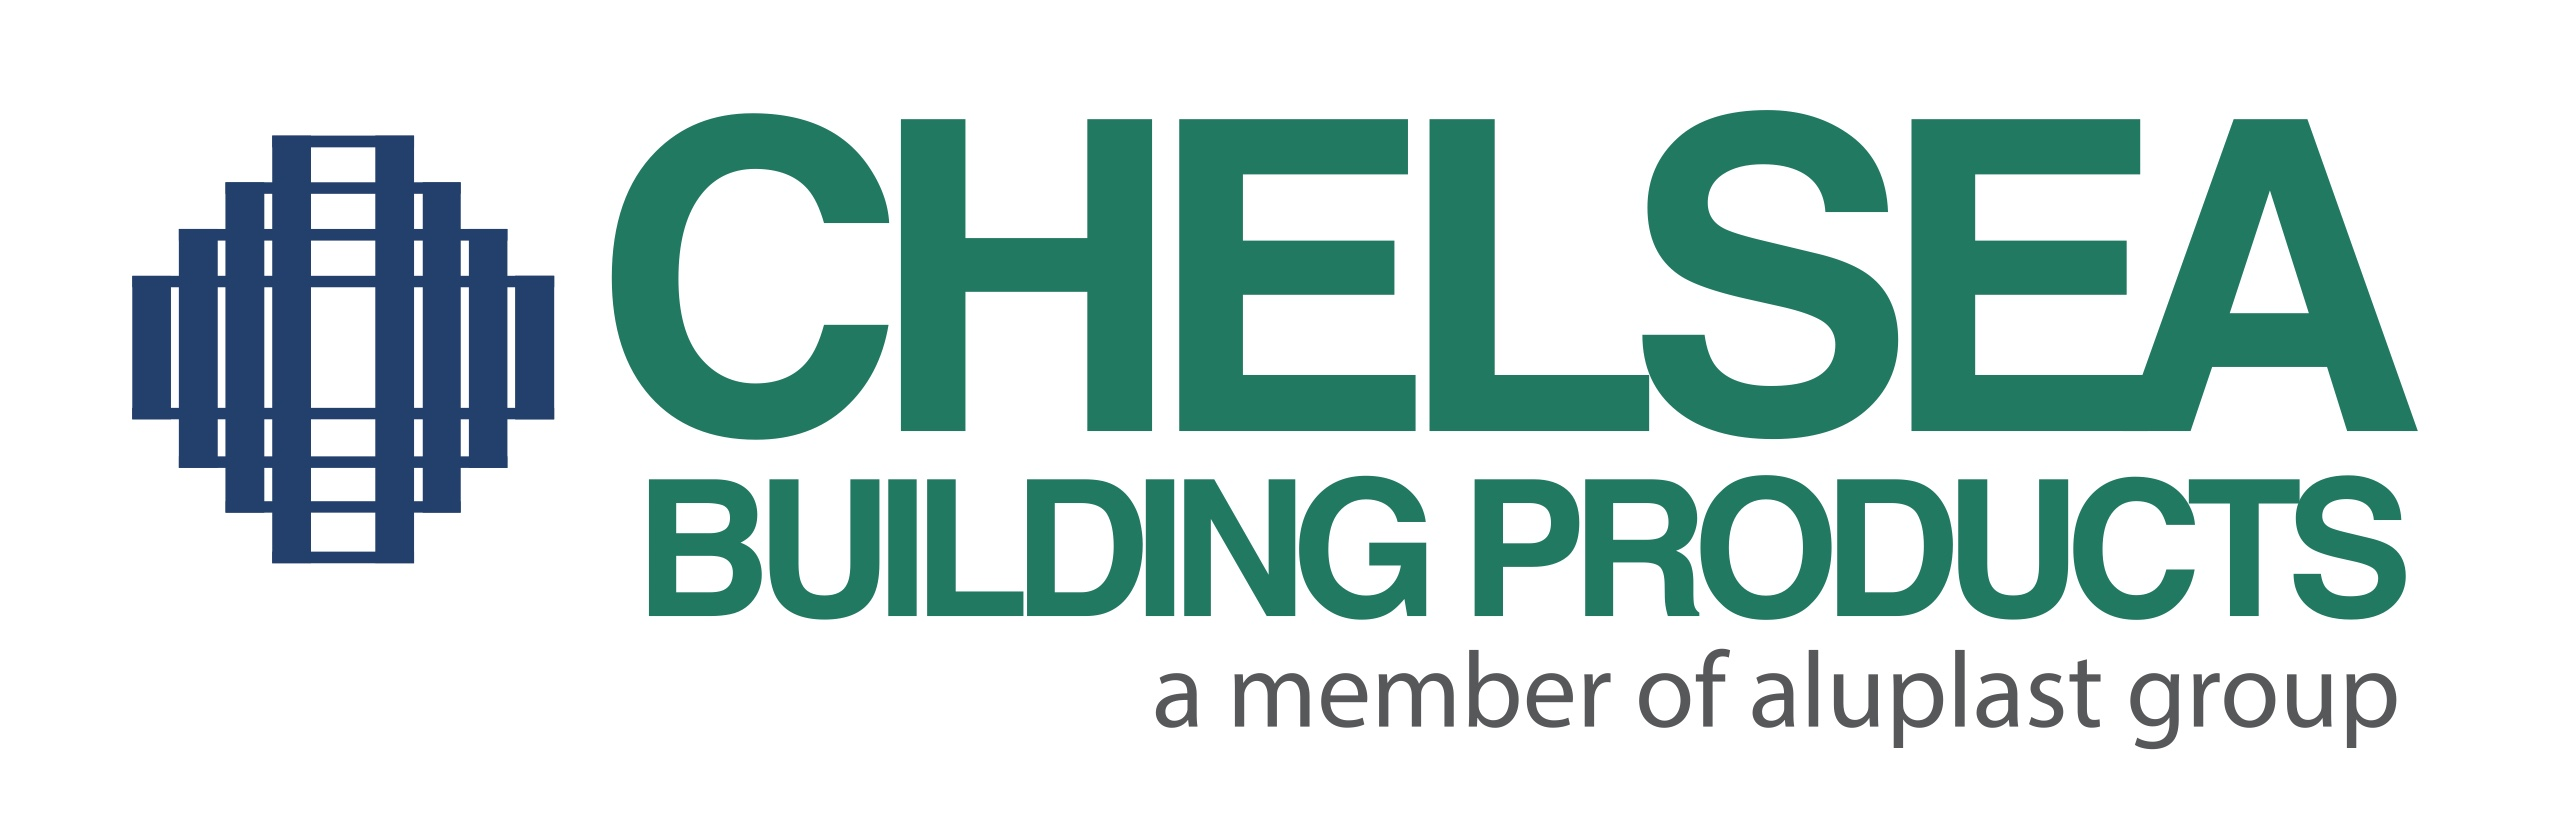 Chelsea Building Products logo